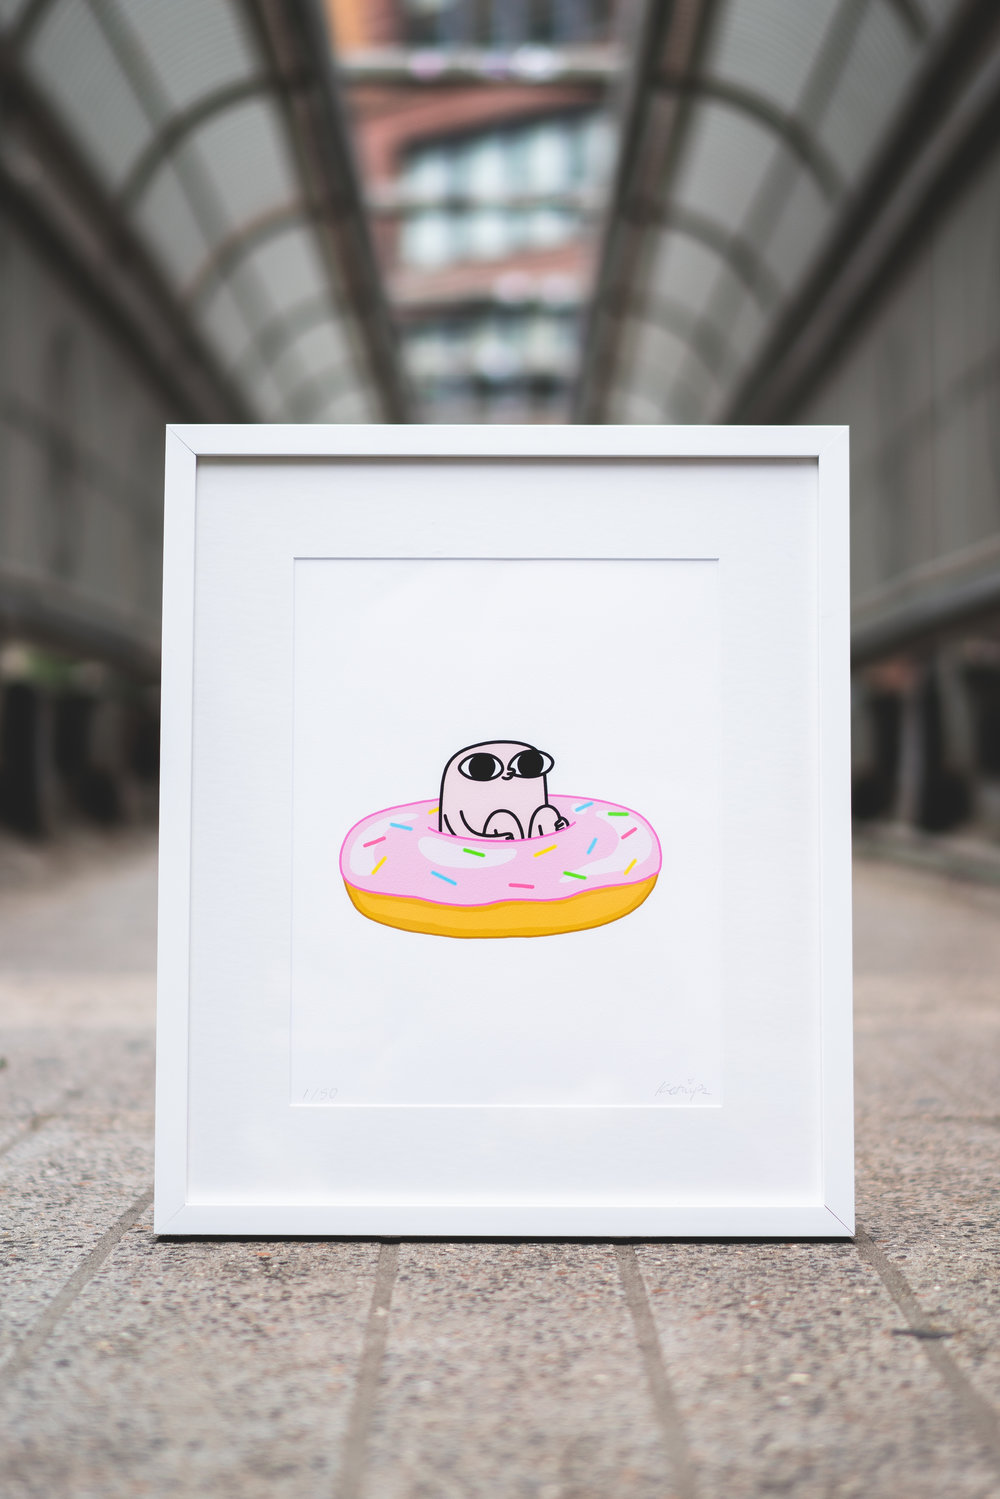 """Donut"" by Ketnipz. Published by Monsieur Marcel. Photo by Shot Alive."